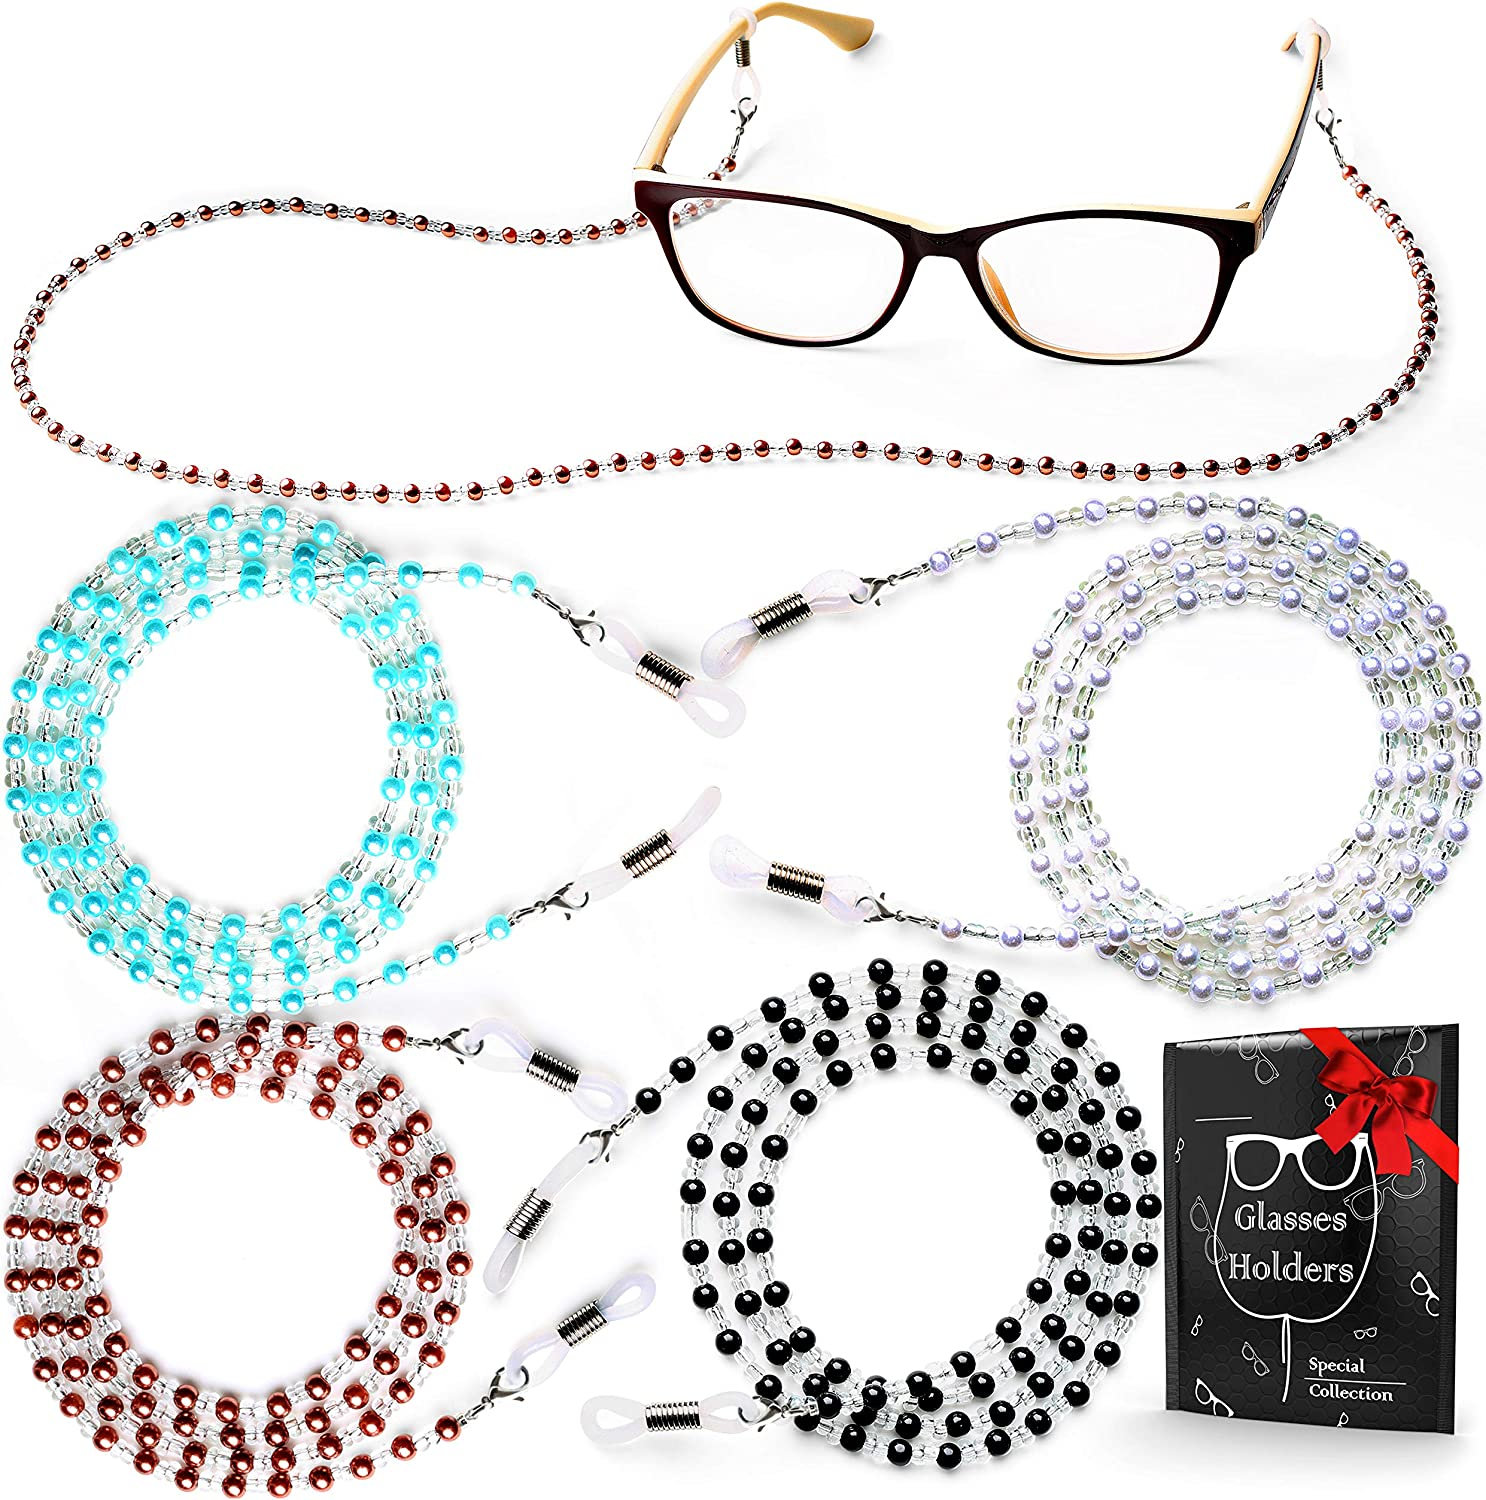 30 Pcs Black Glasses Cord Glasses Chain Neck Strap Cord Glasses Holder One Color